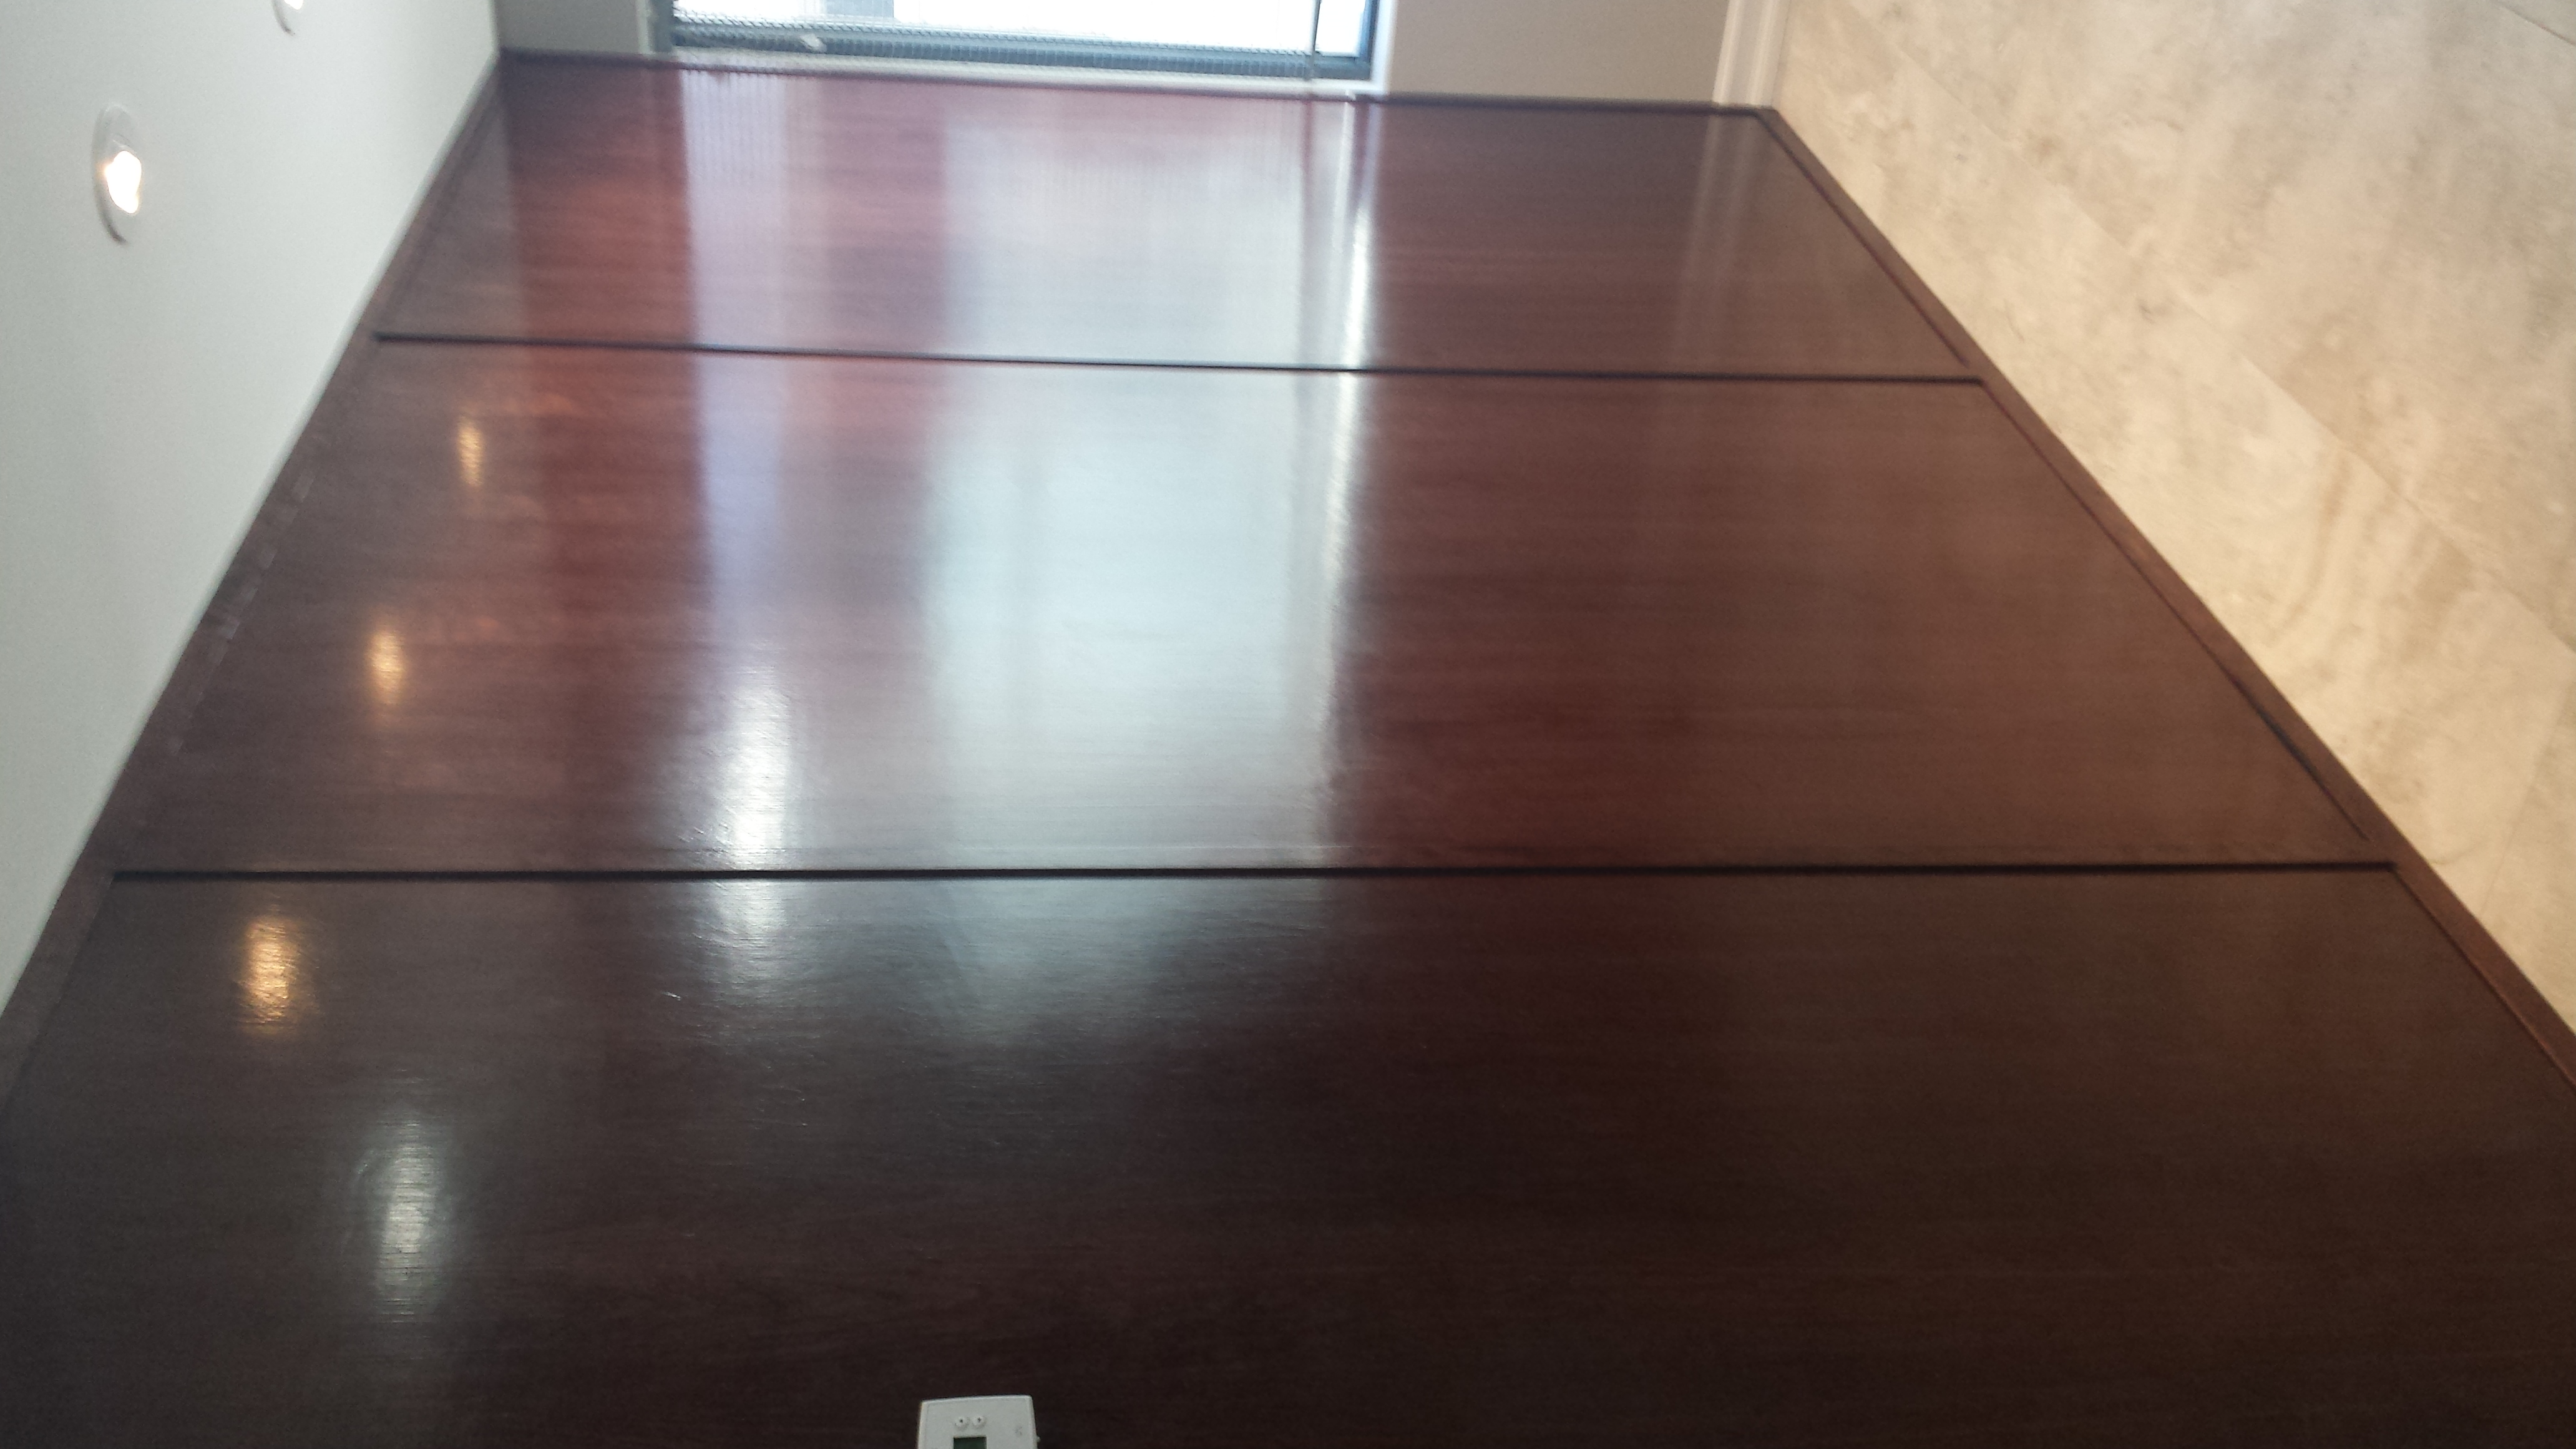 Panneling Work